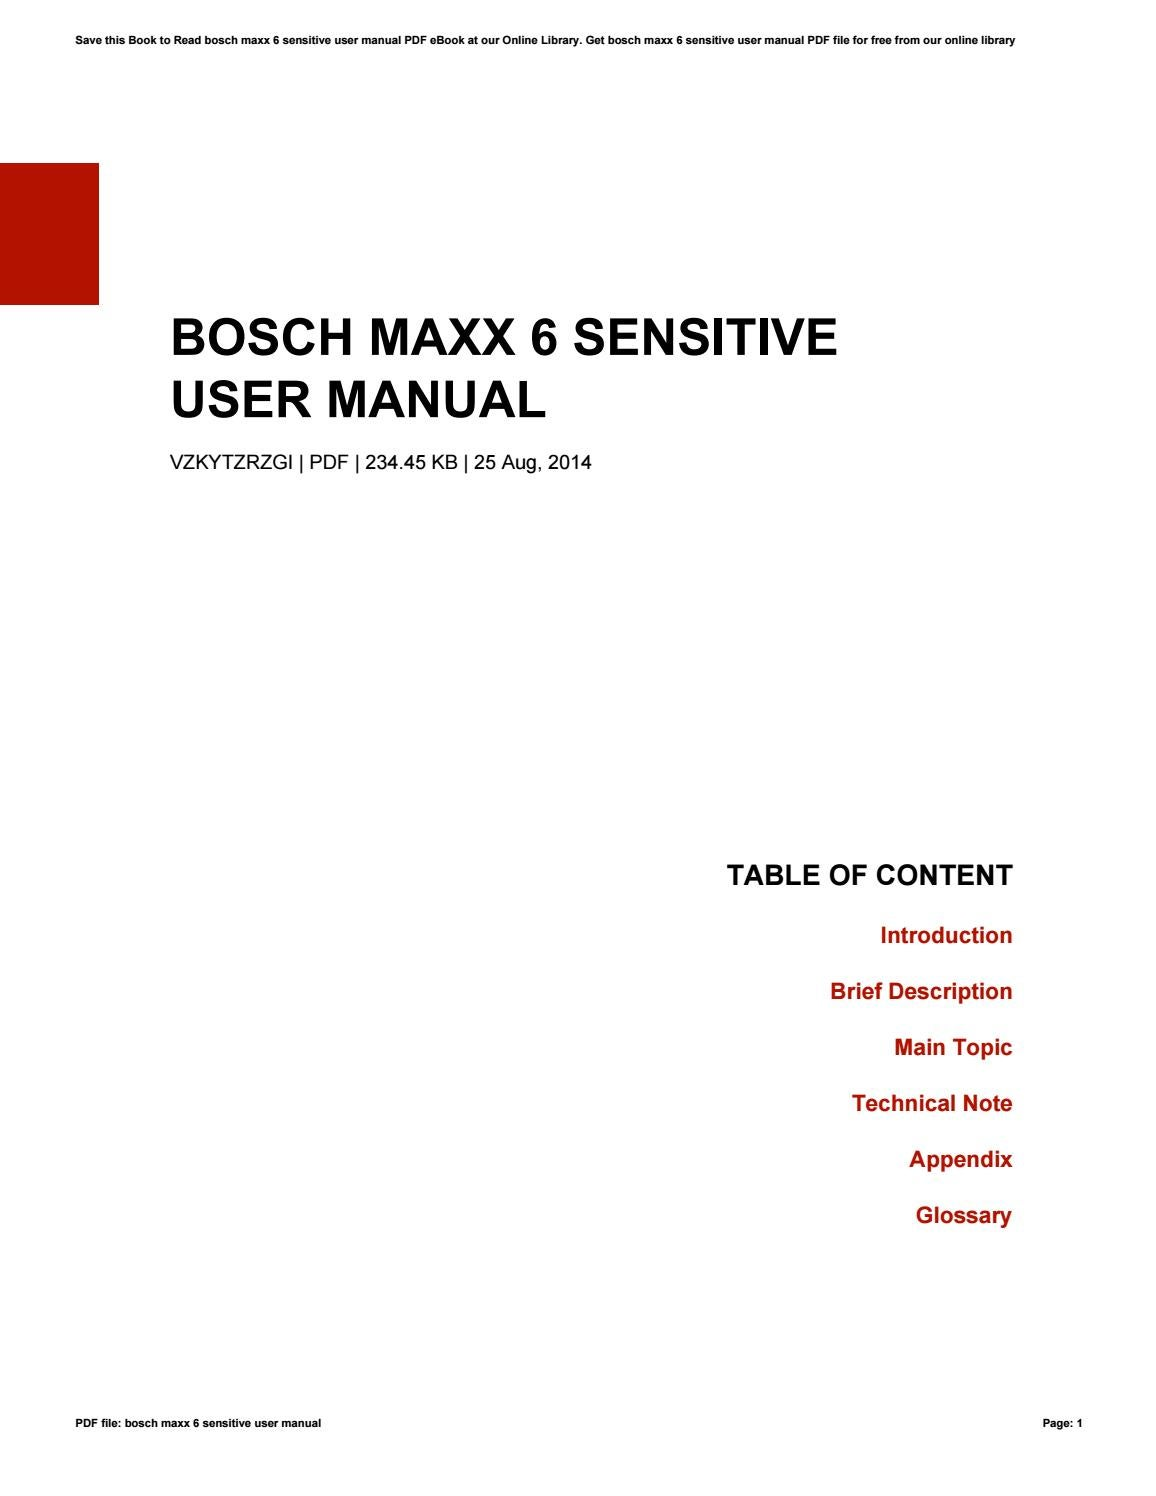 manual for bosch model shxm65w55n